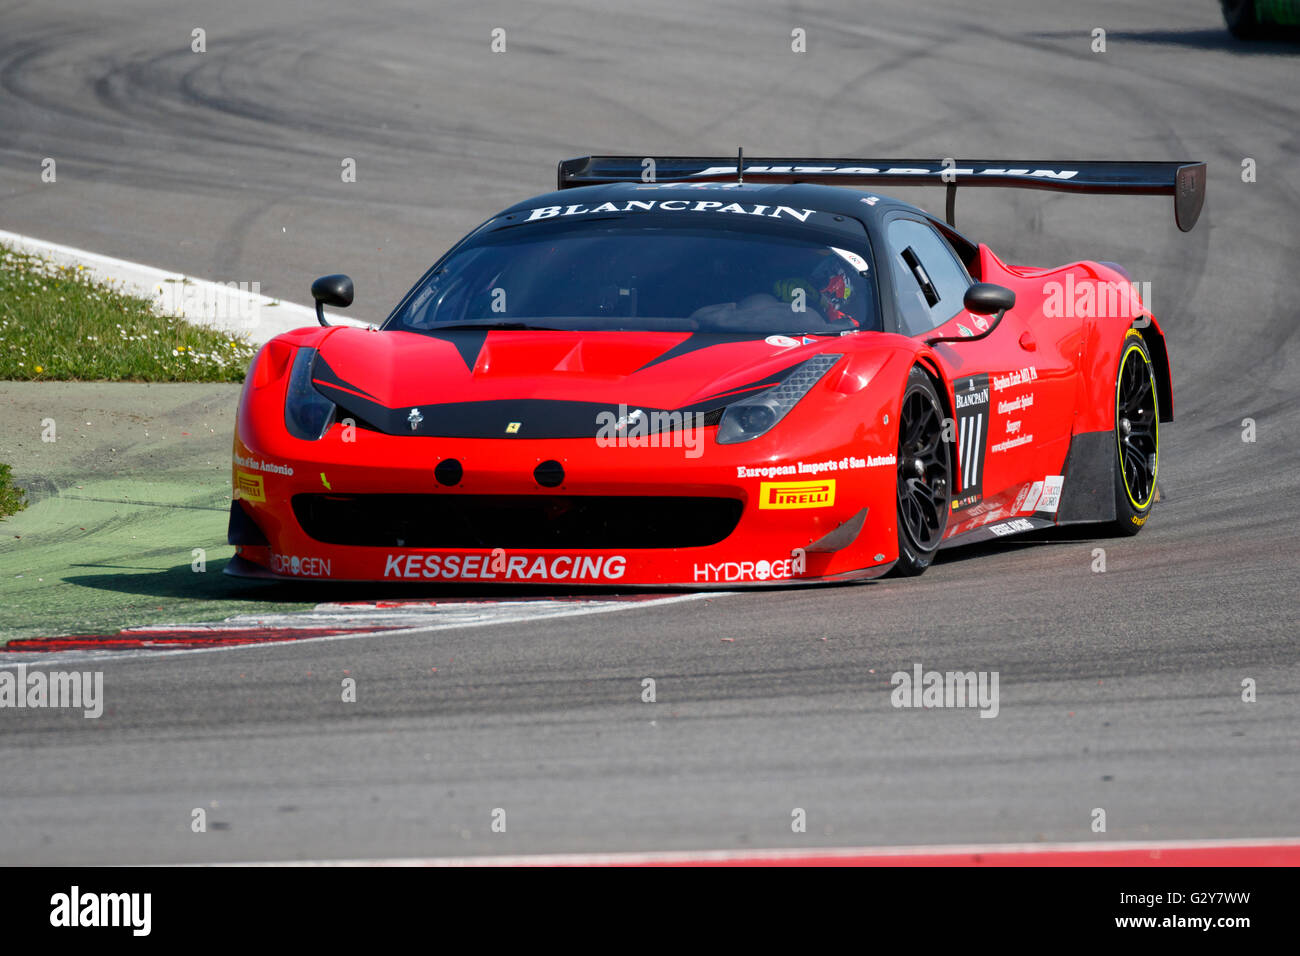 Ferrari 458 Italia Gt3 High Resolution Stock Photography And Images Alamy